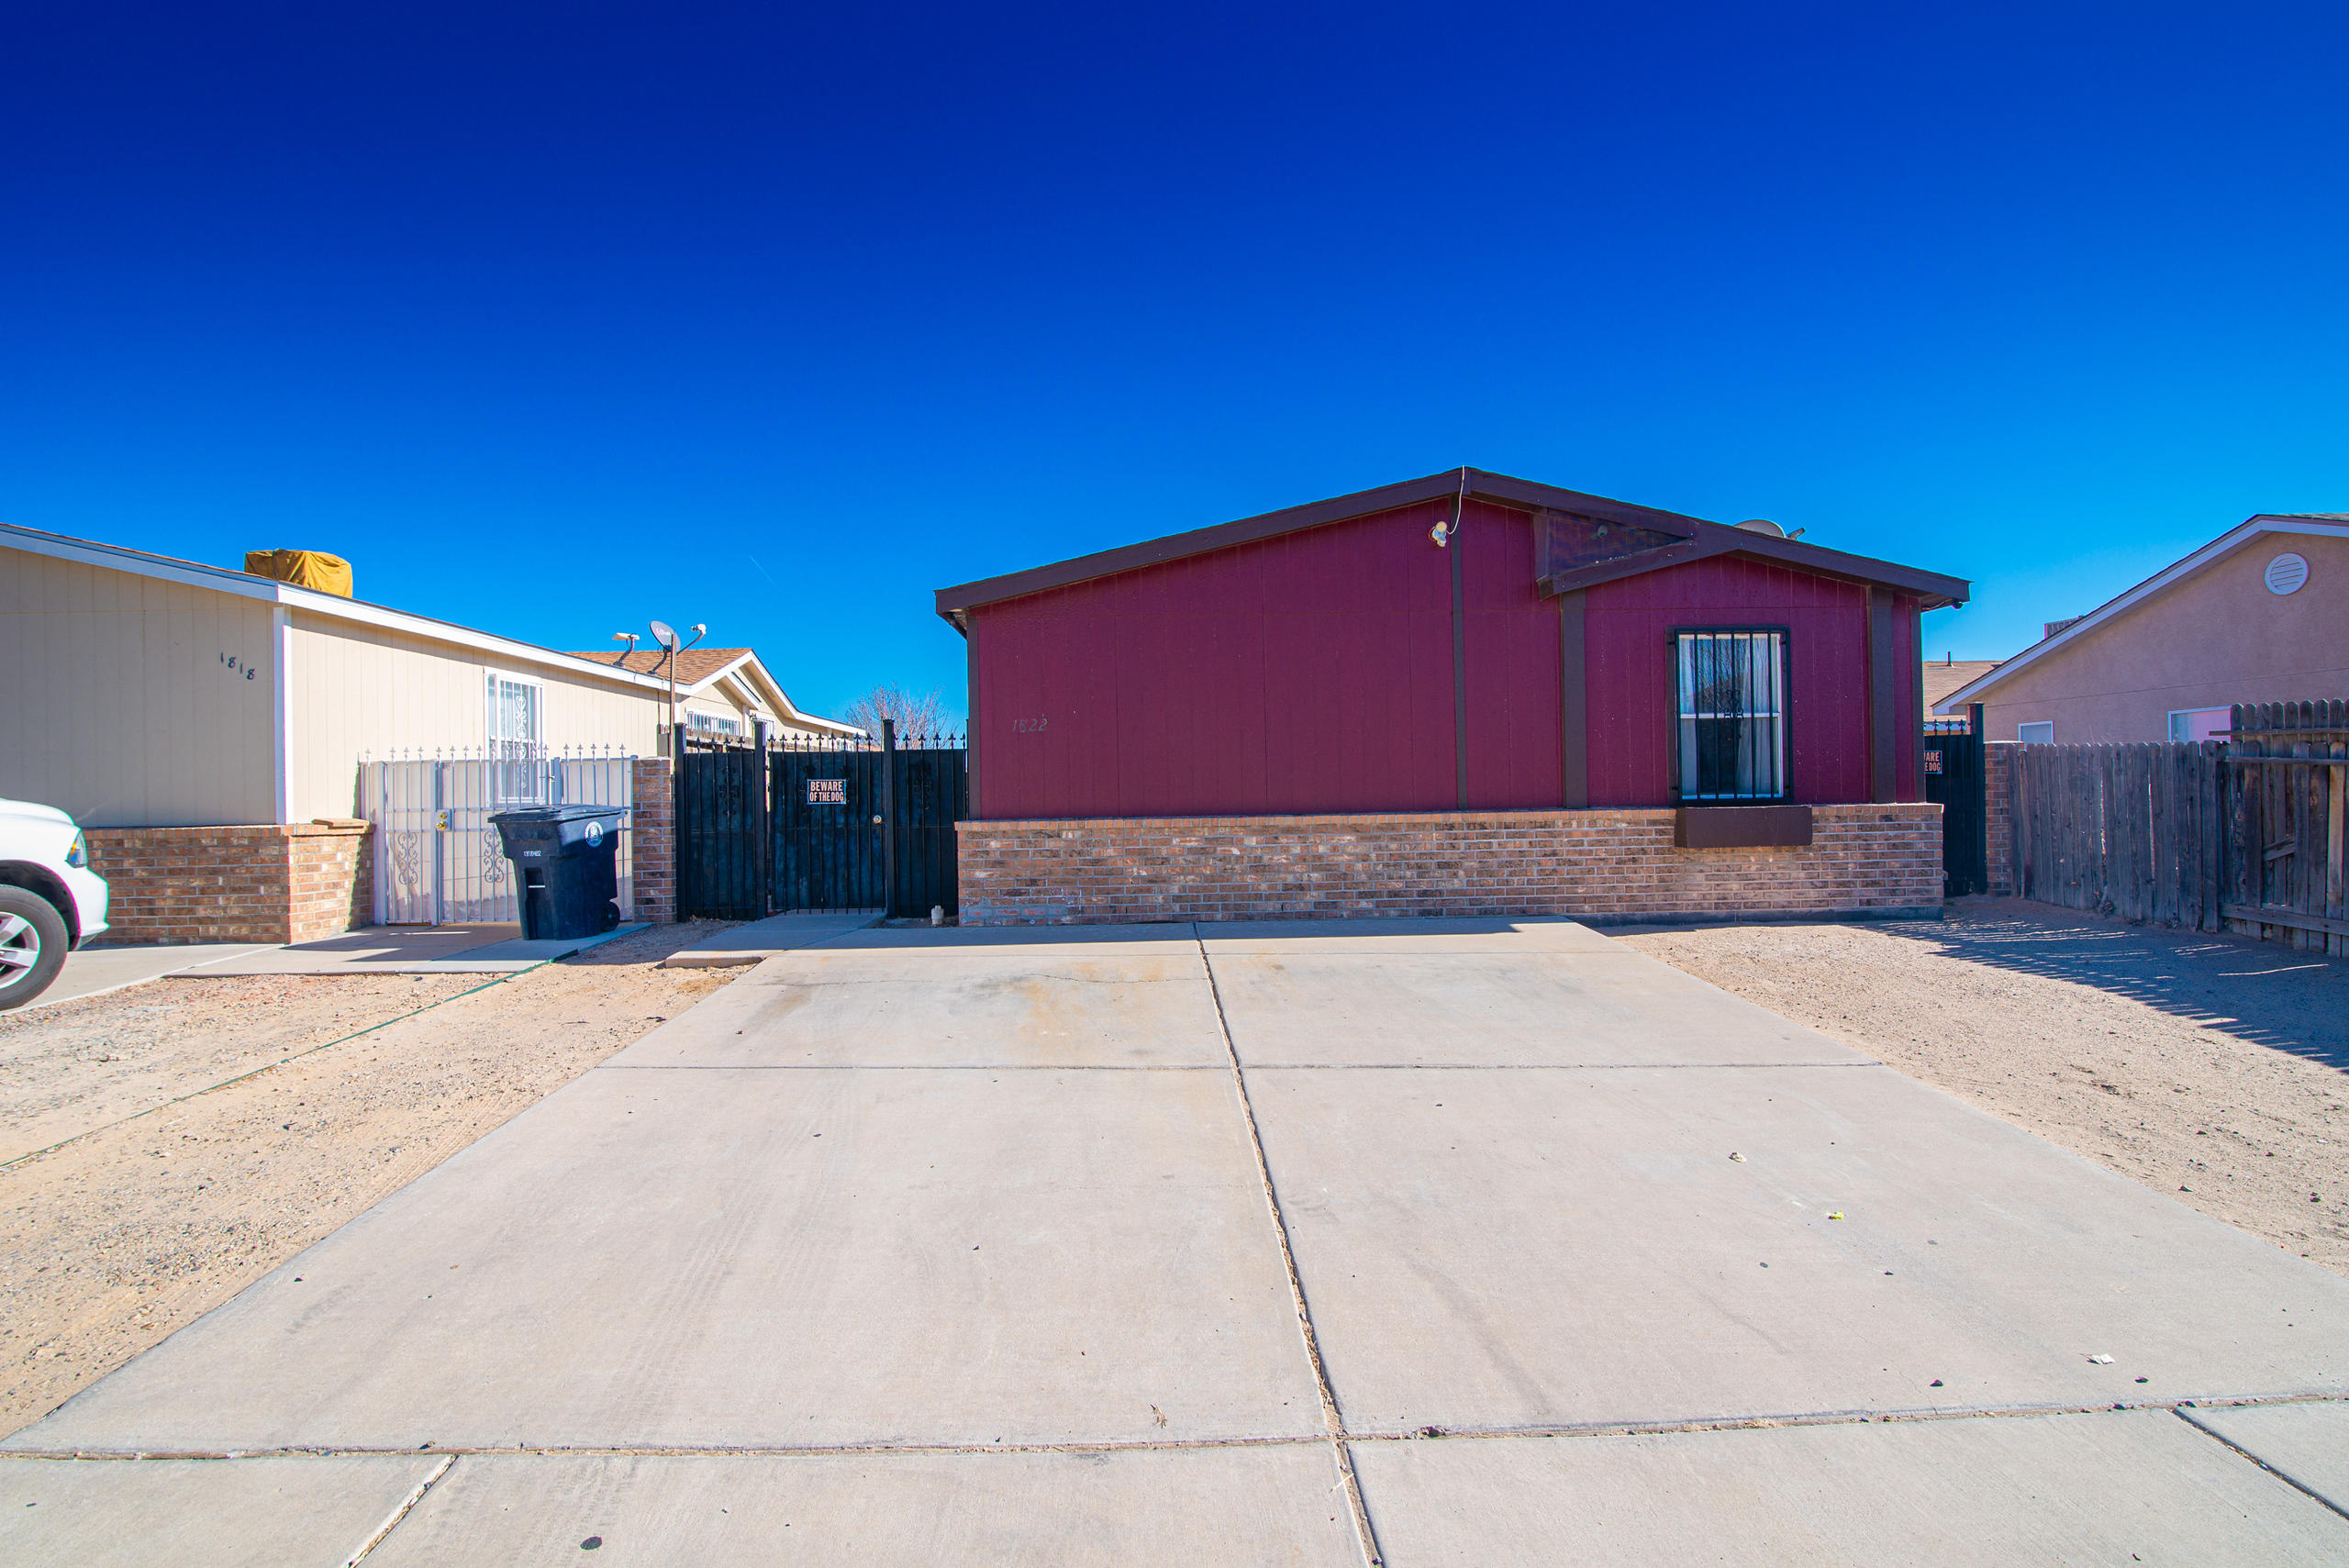 Come take a look at this spacious Beautiful 3 Bedroom 2 Bath Home With Tile Throughout Living Areas, Well Maintained, Big Kitchen. Don't forget about the stainless steel stove and microwave! Great home at a fantastic price and no HOA!